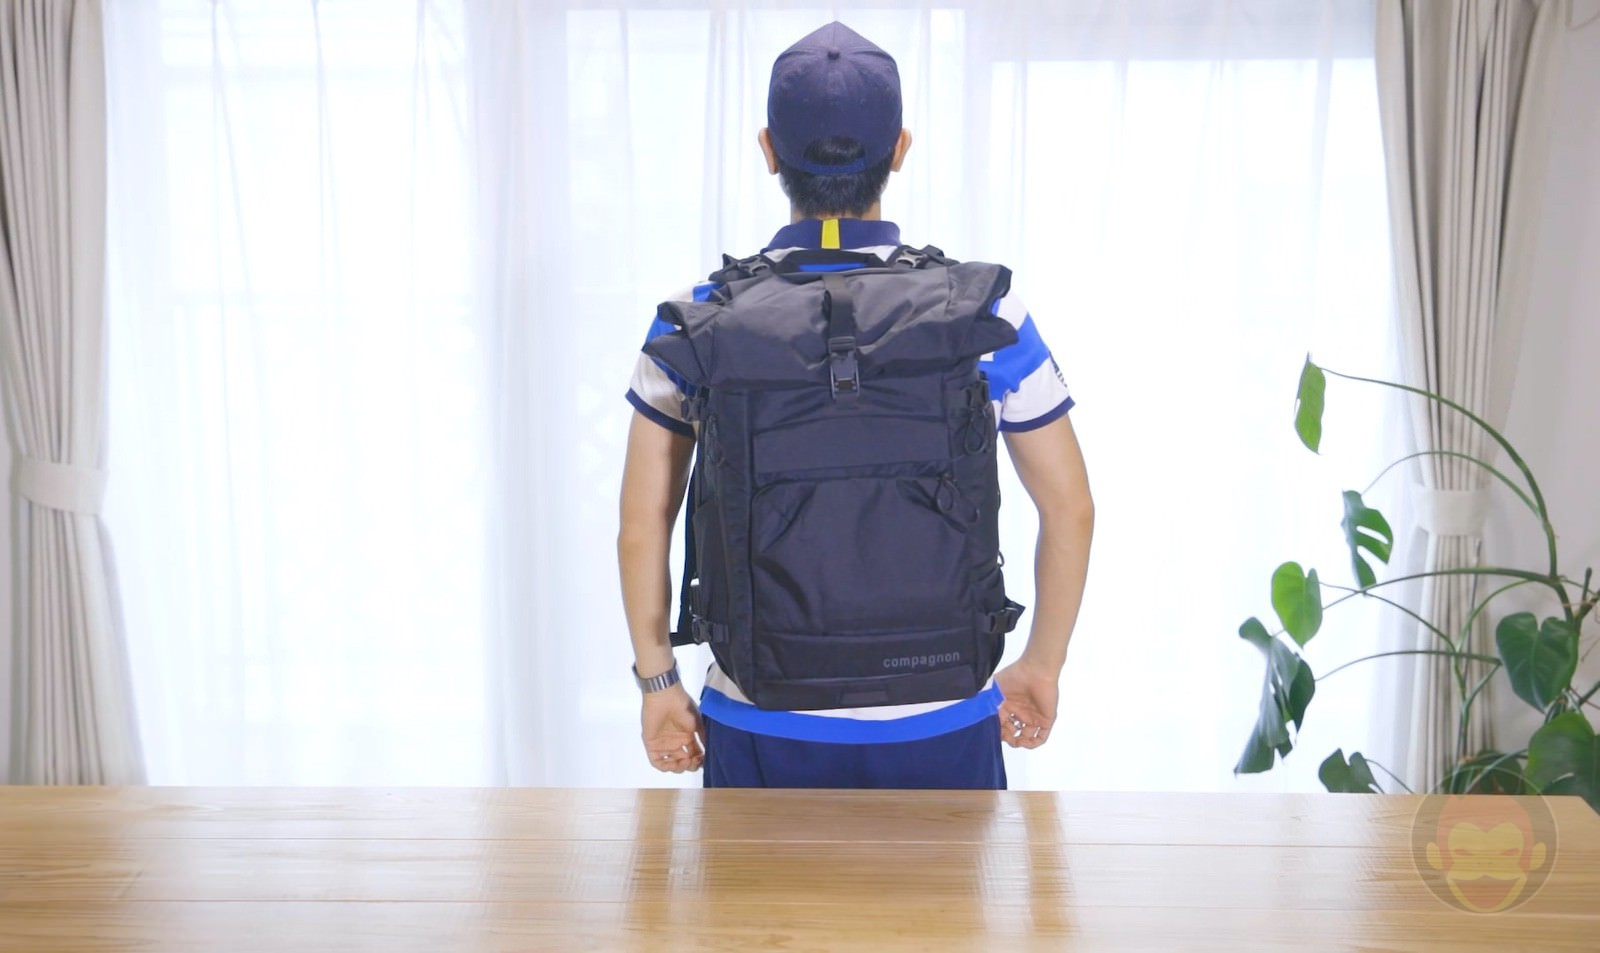 Wearing the Compagnon Element Backpack 09